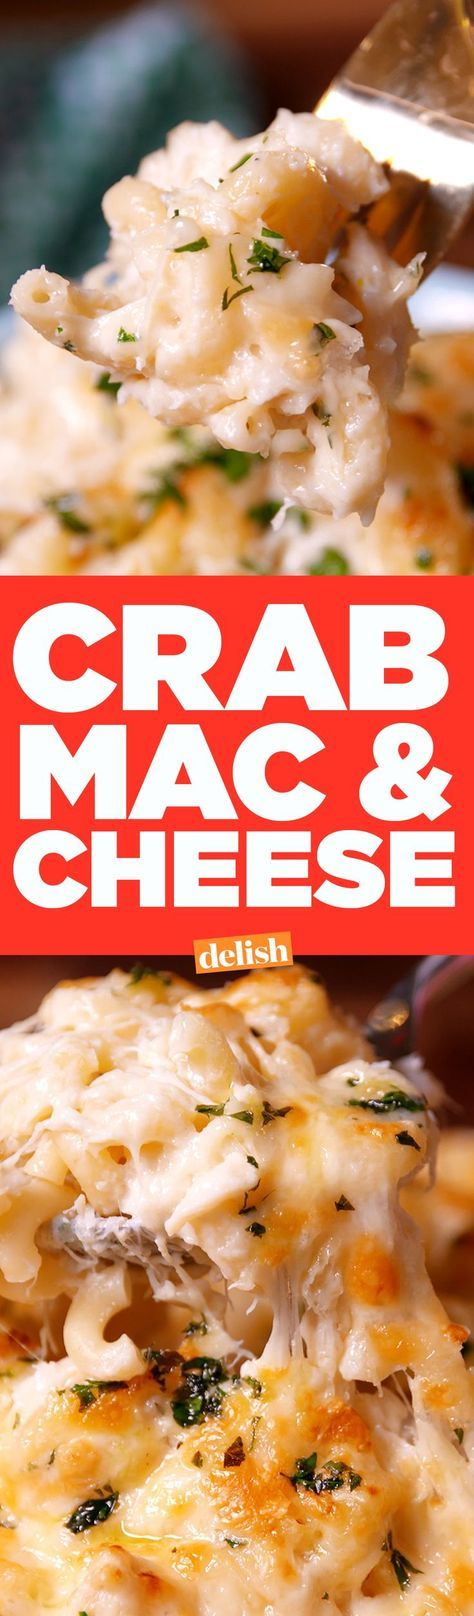 The only thing better than macaroni and cheese? Crab Mac & Cheese. Get the recipe on http://Delish.com.